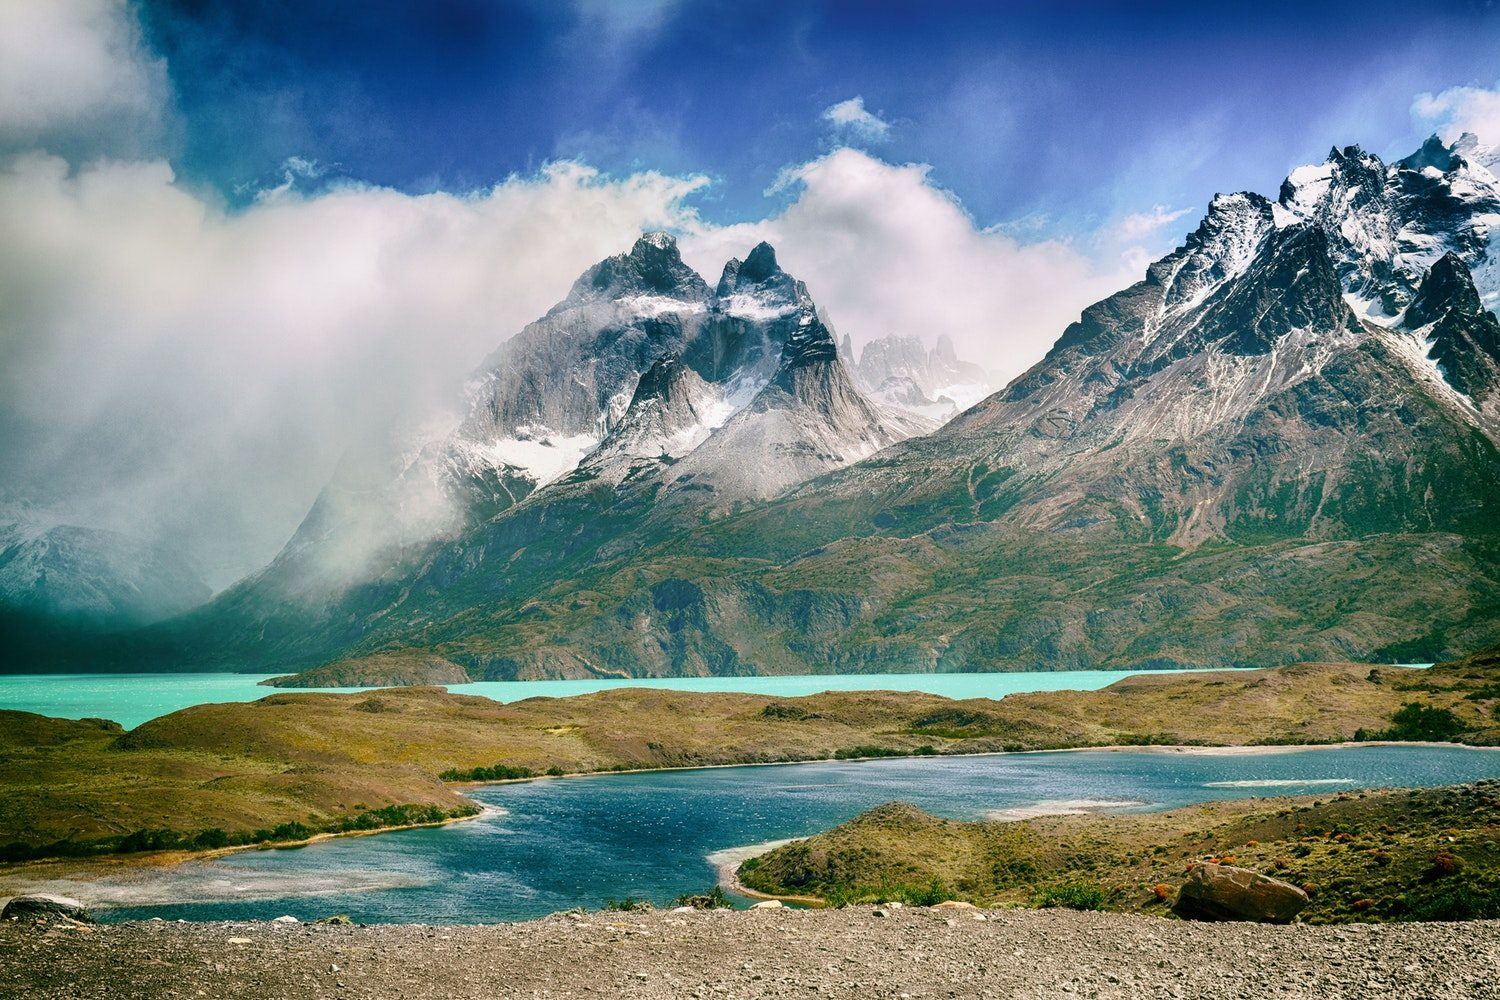 torres del paine - one of the best things to do in Chile